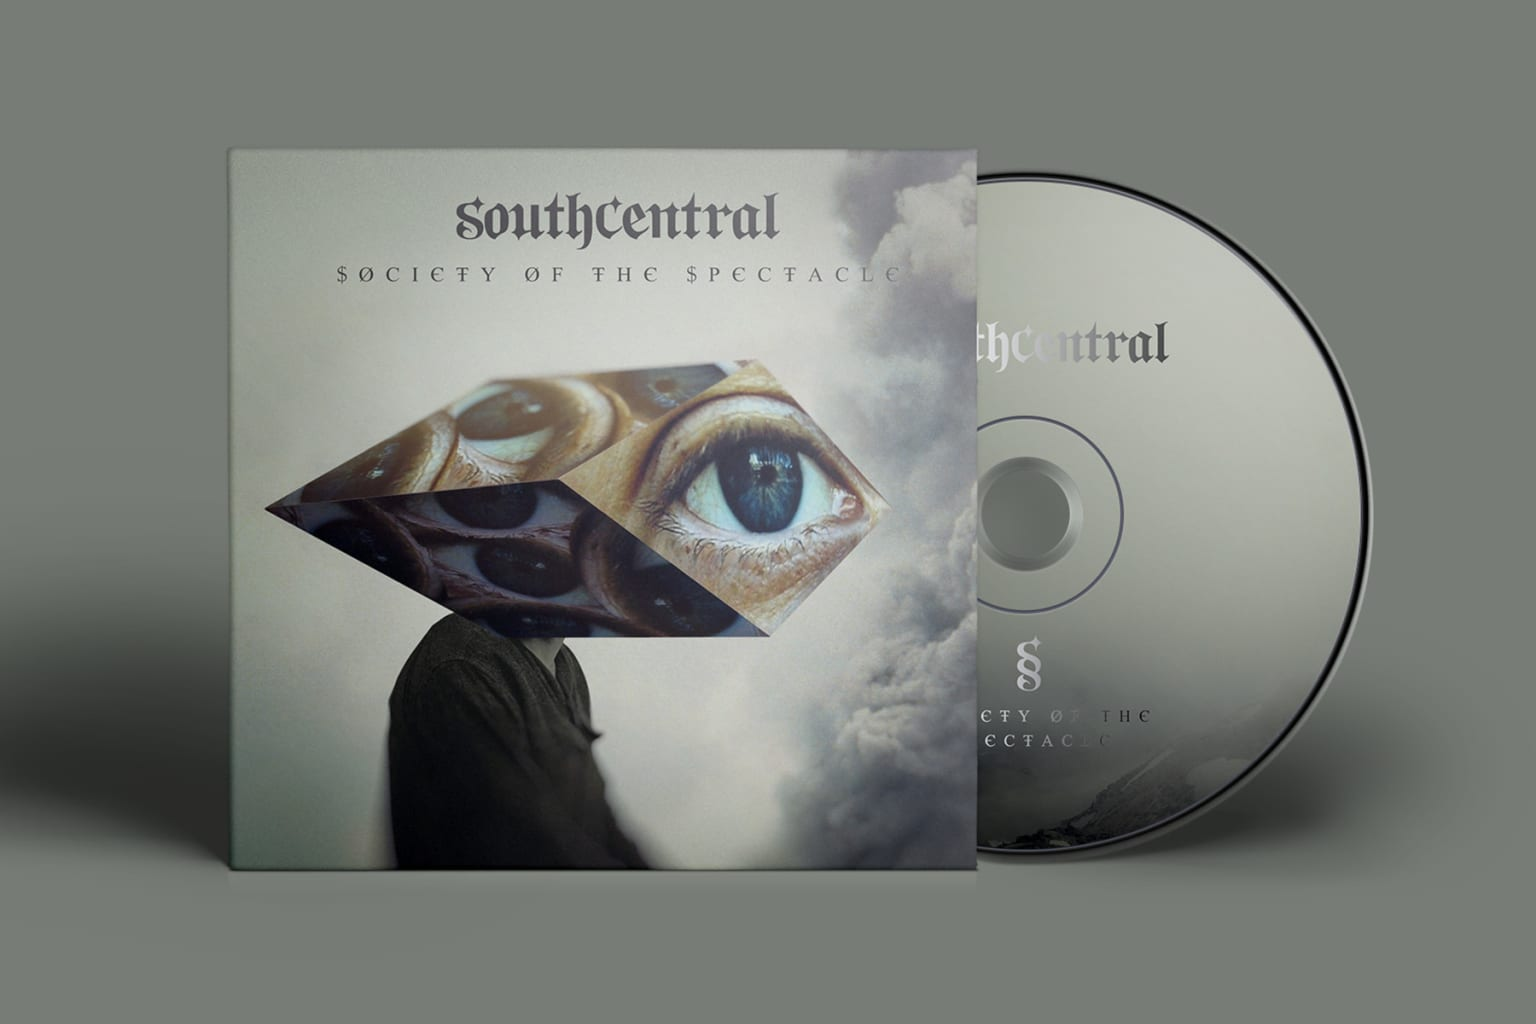 South Central — Society of the Spectacle